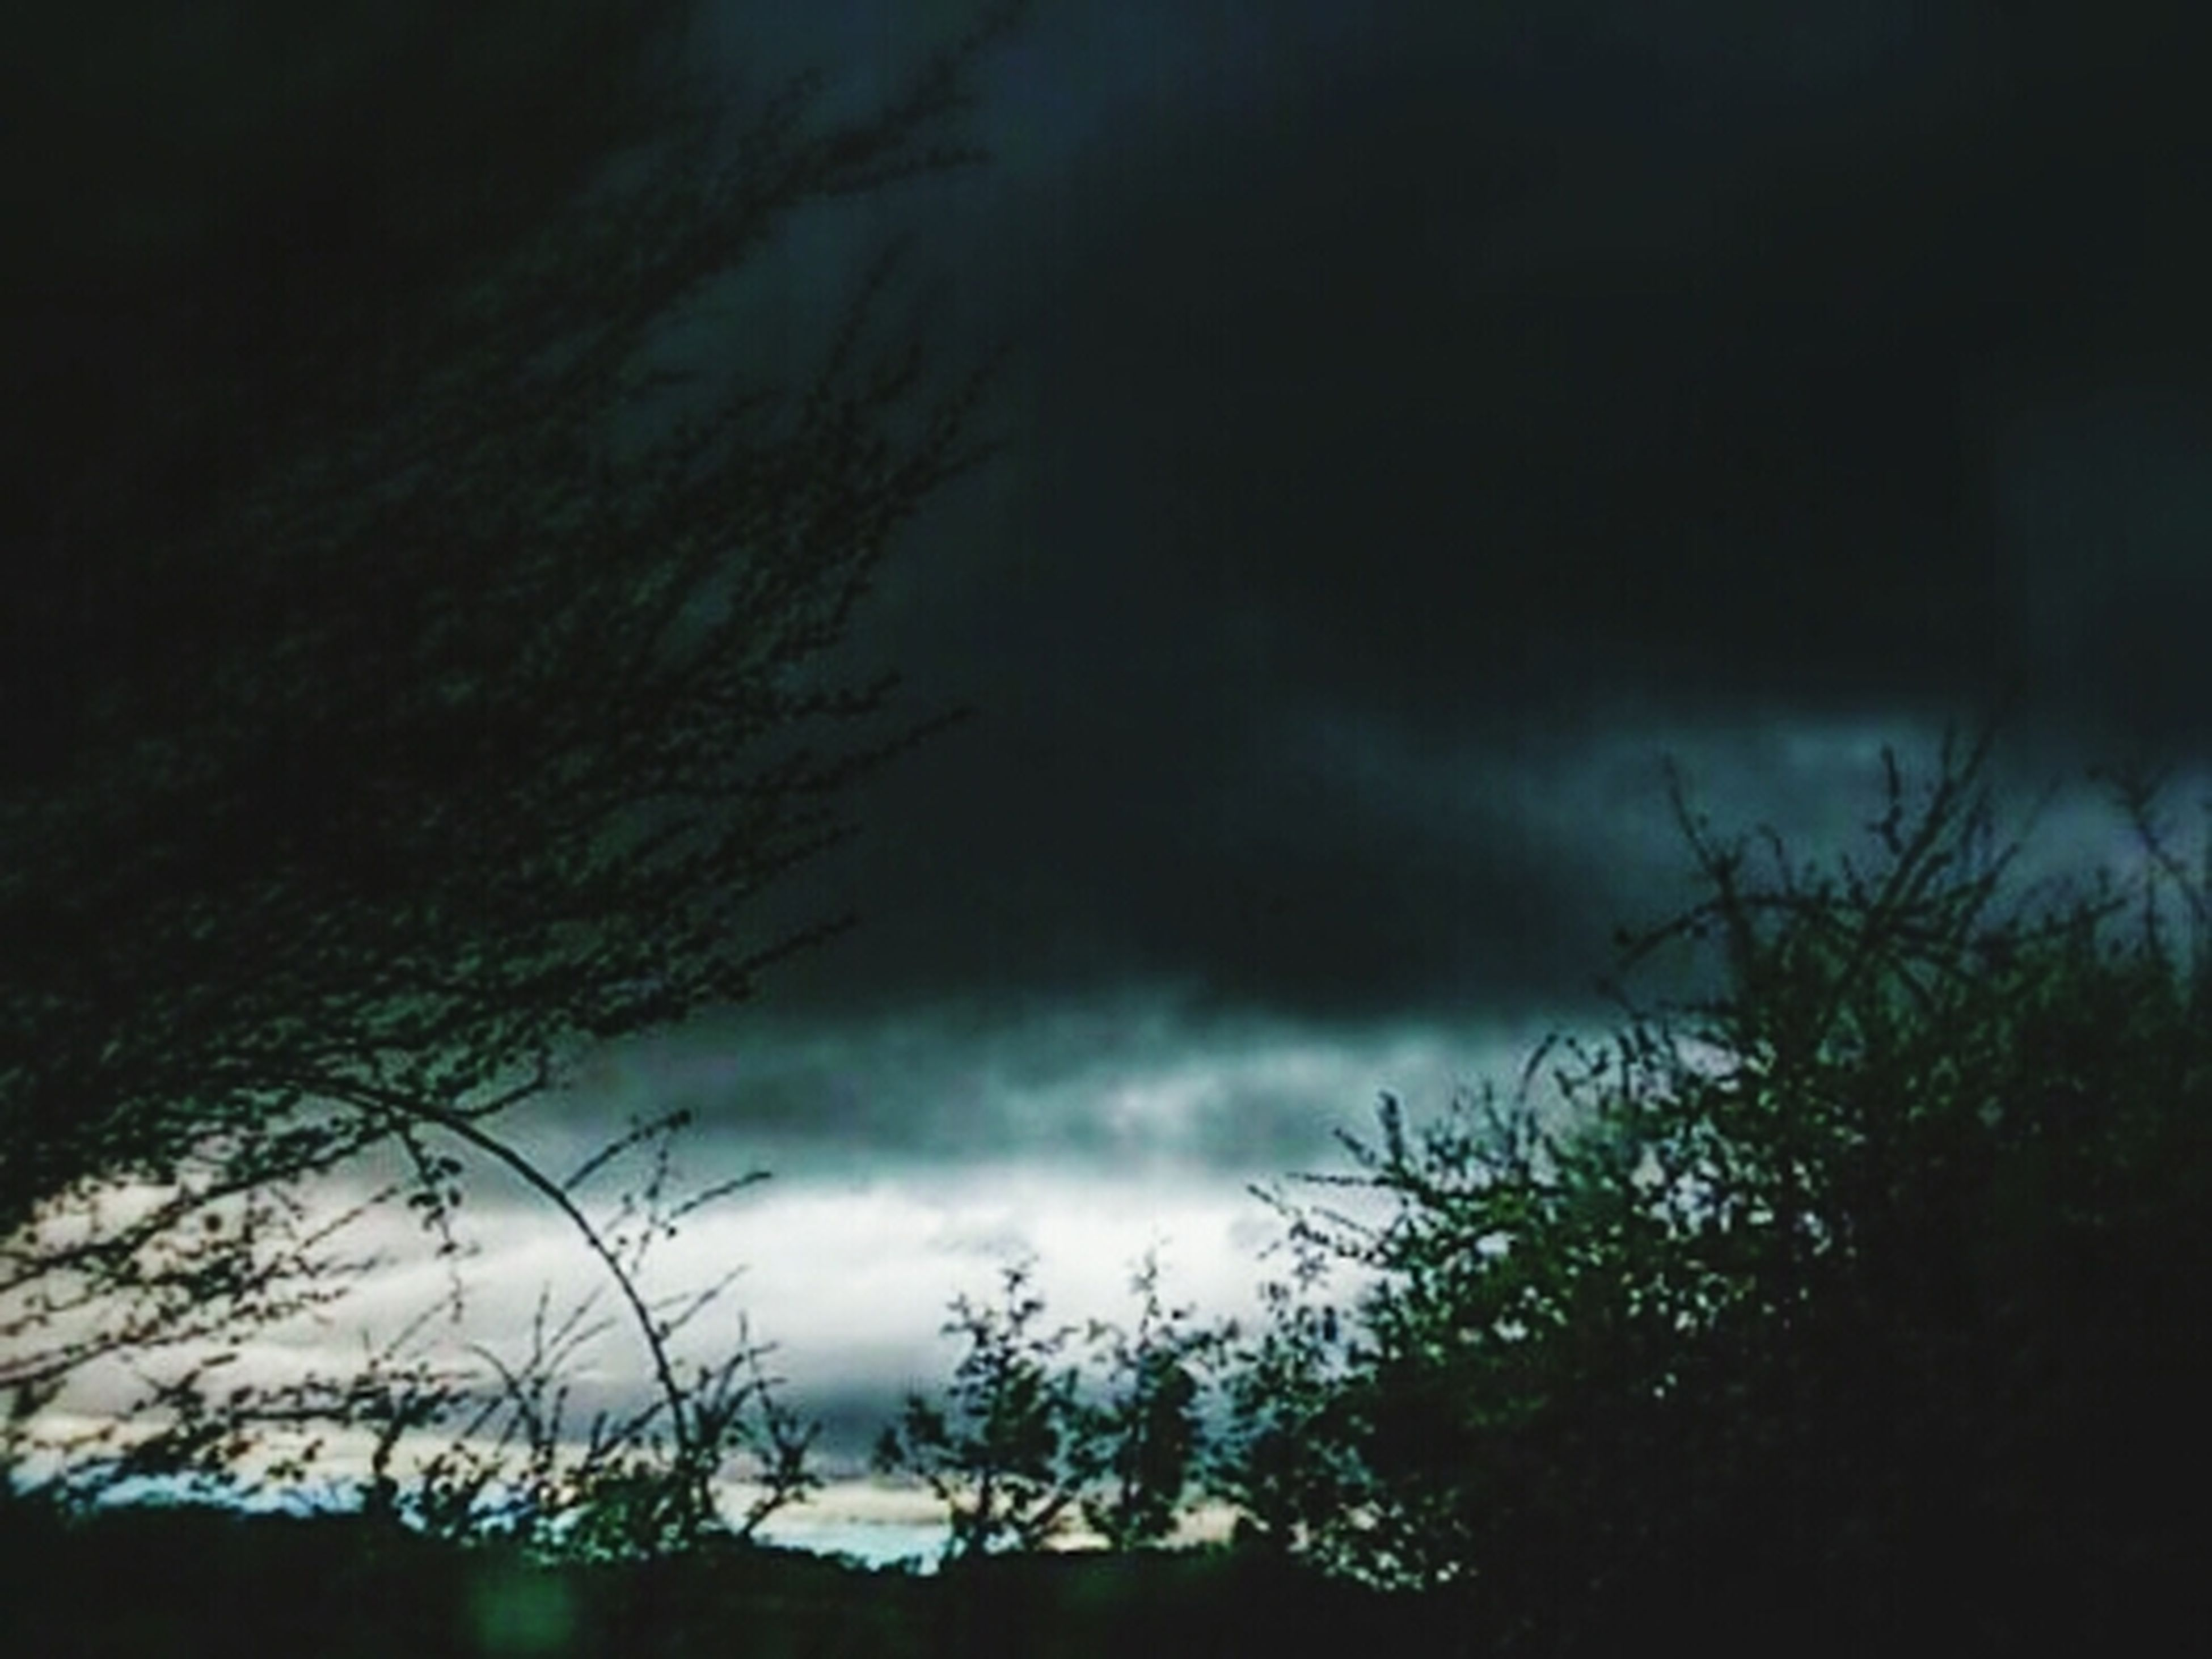 sky, cloud - sky, silhouette, cloudy, low angle view, tranquility, weather, beauty in nature, nature, tranquil scene, overcast, scenics, tree, storm cloud, dusk, cloud, dramatic sky, outdoors, idyllic, atmospheric mood